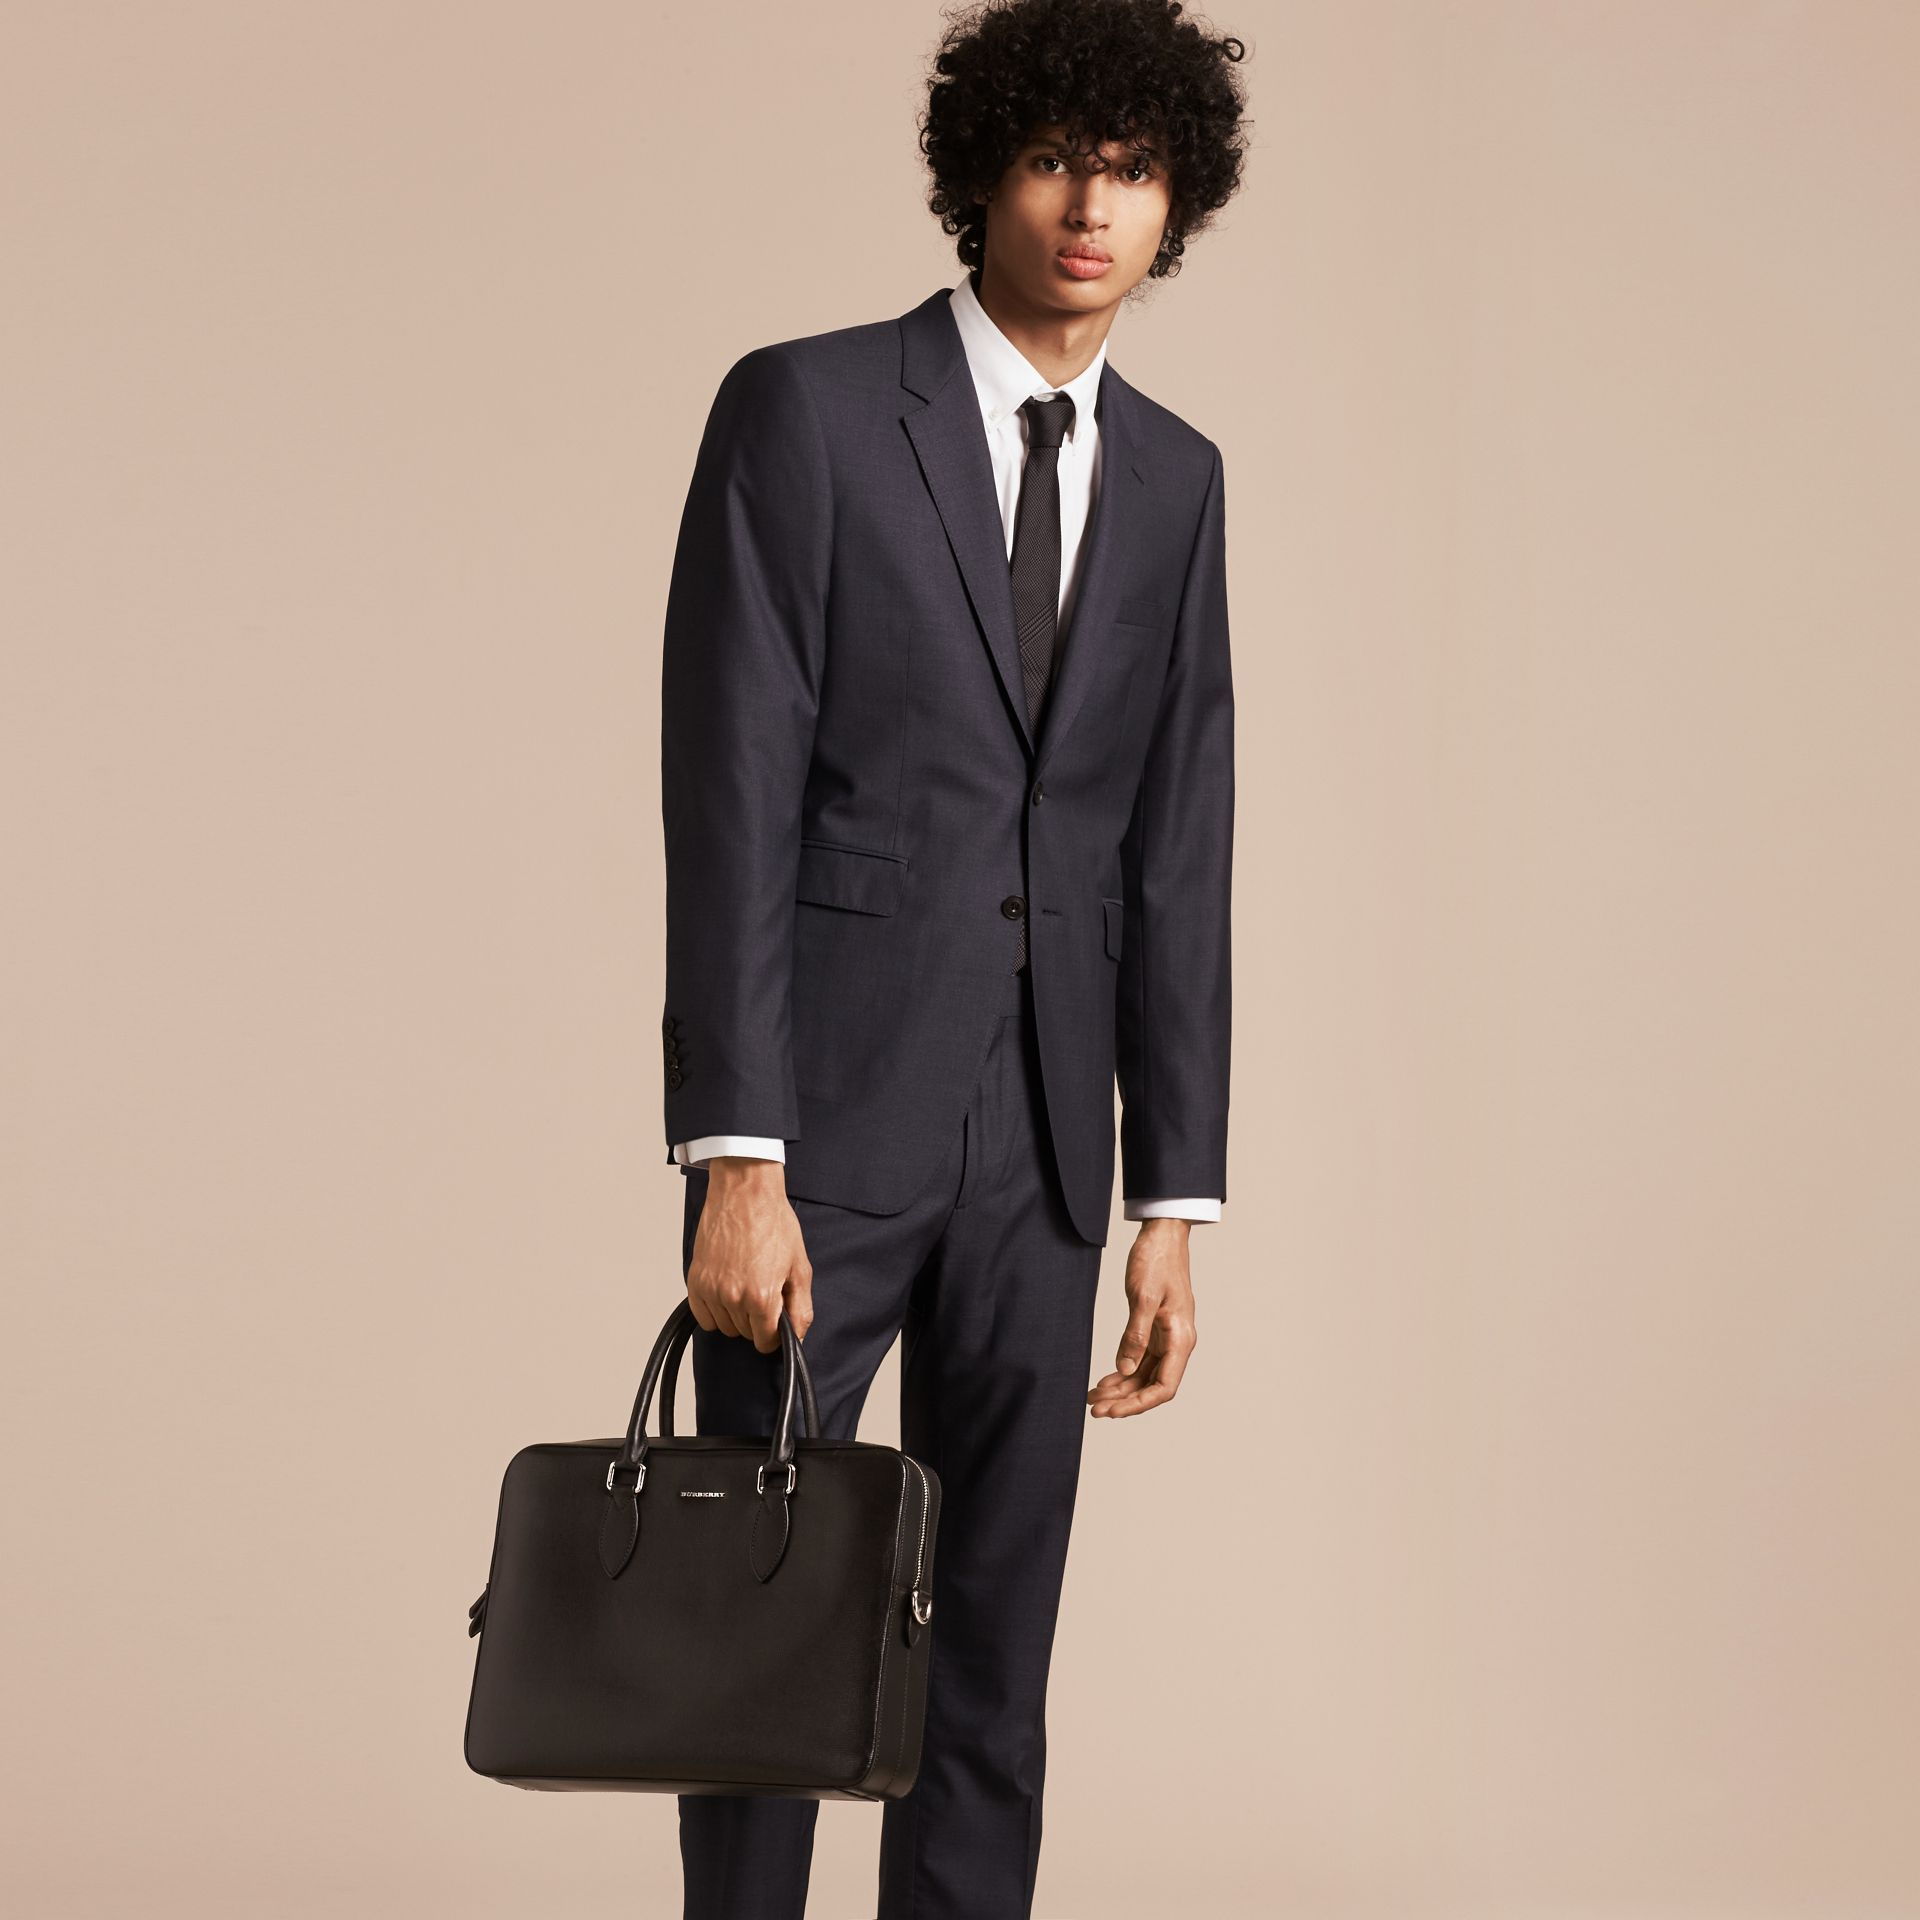 London Leather Briefcase in Black - Men | Burberry Singapore - gallery image 3